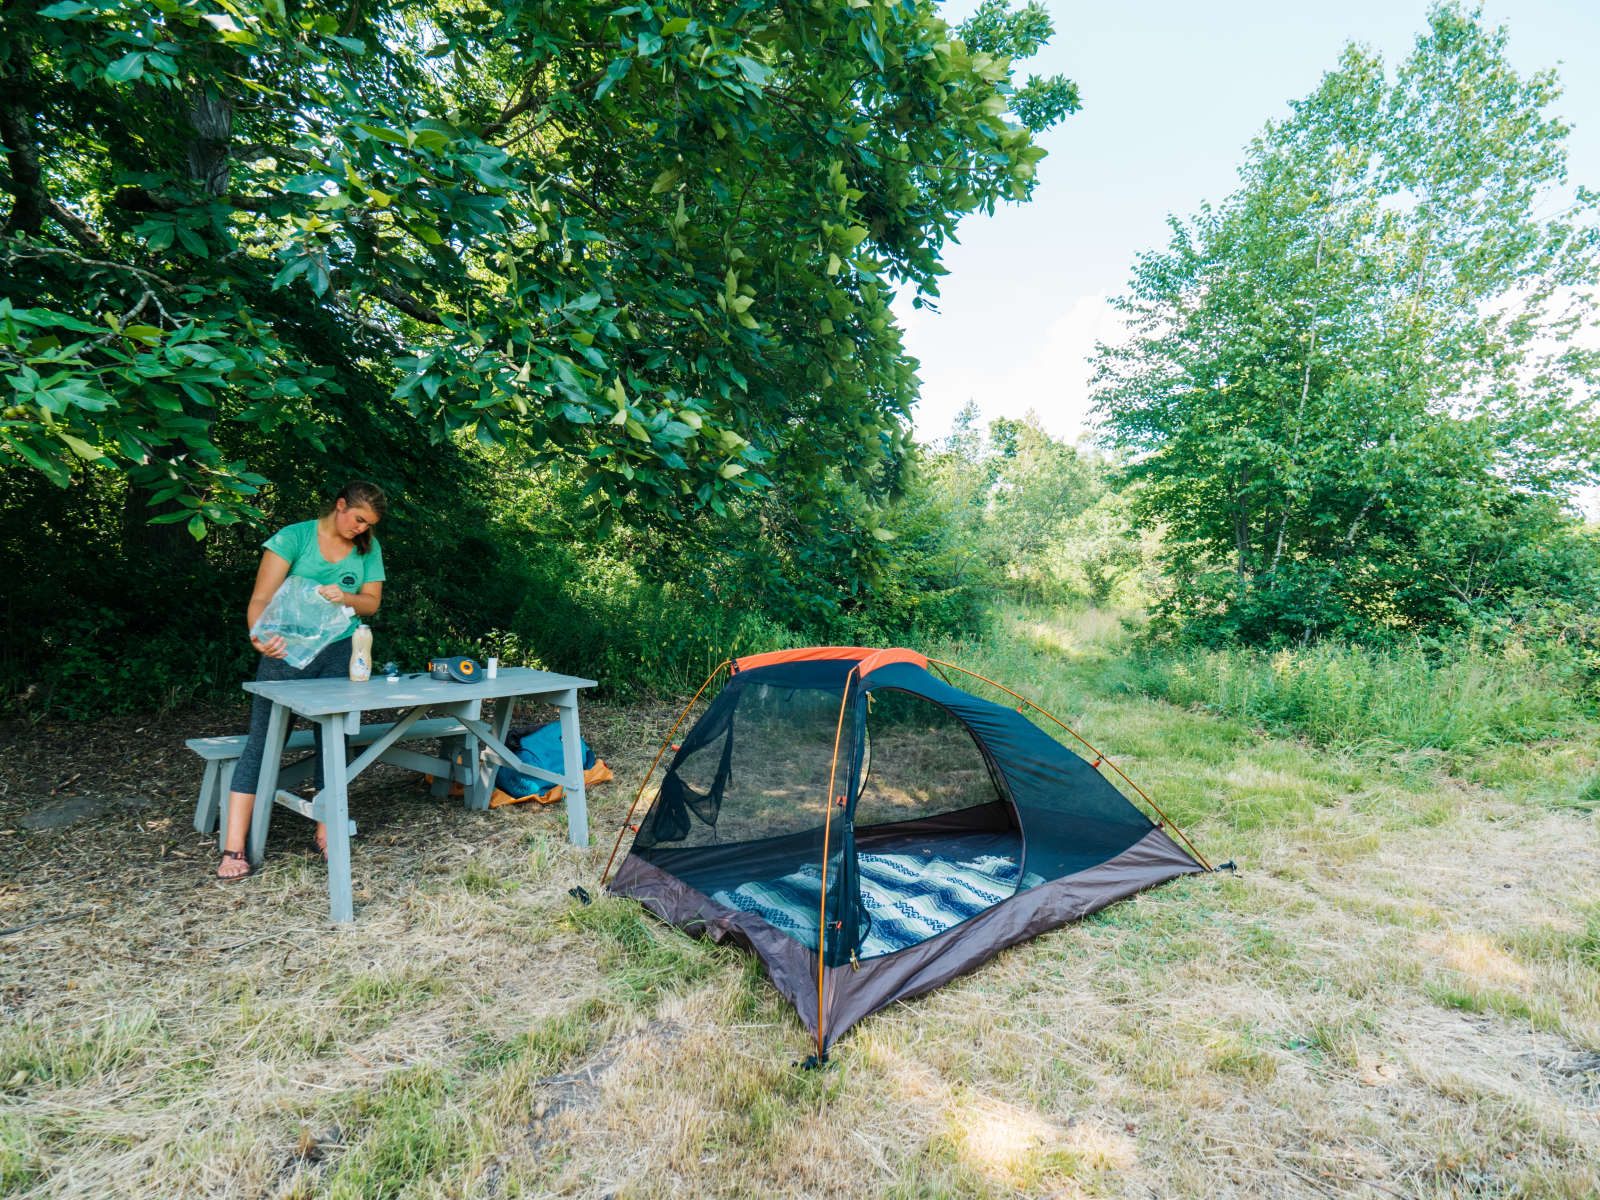 Camping in Finland: civilized outdoor recreation 2